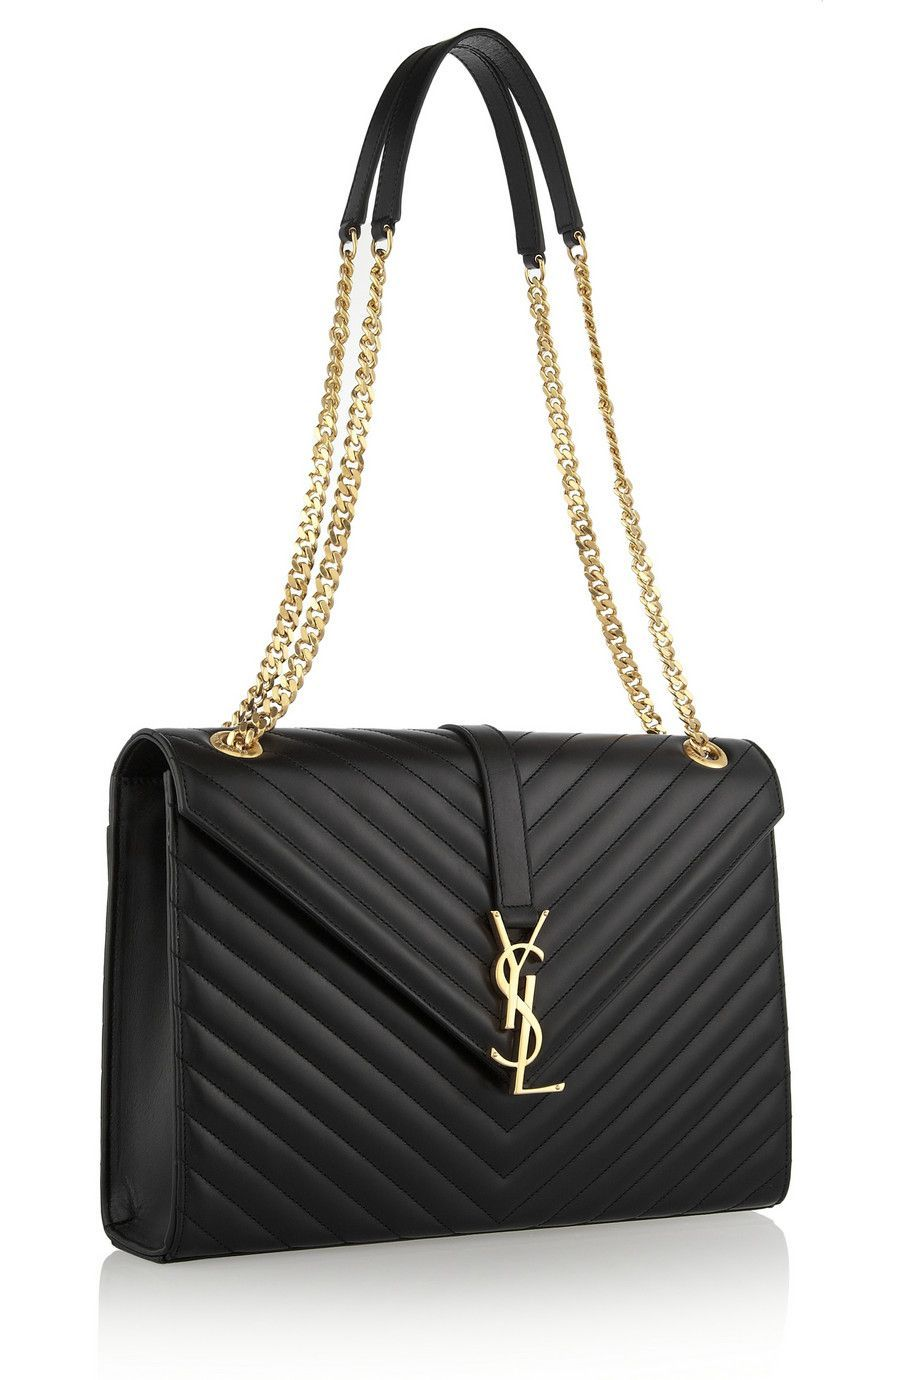 yves saint laurent väska